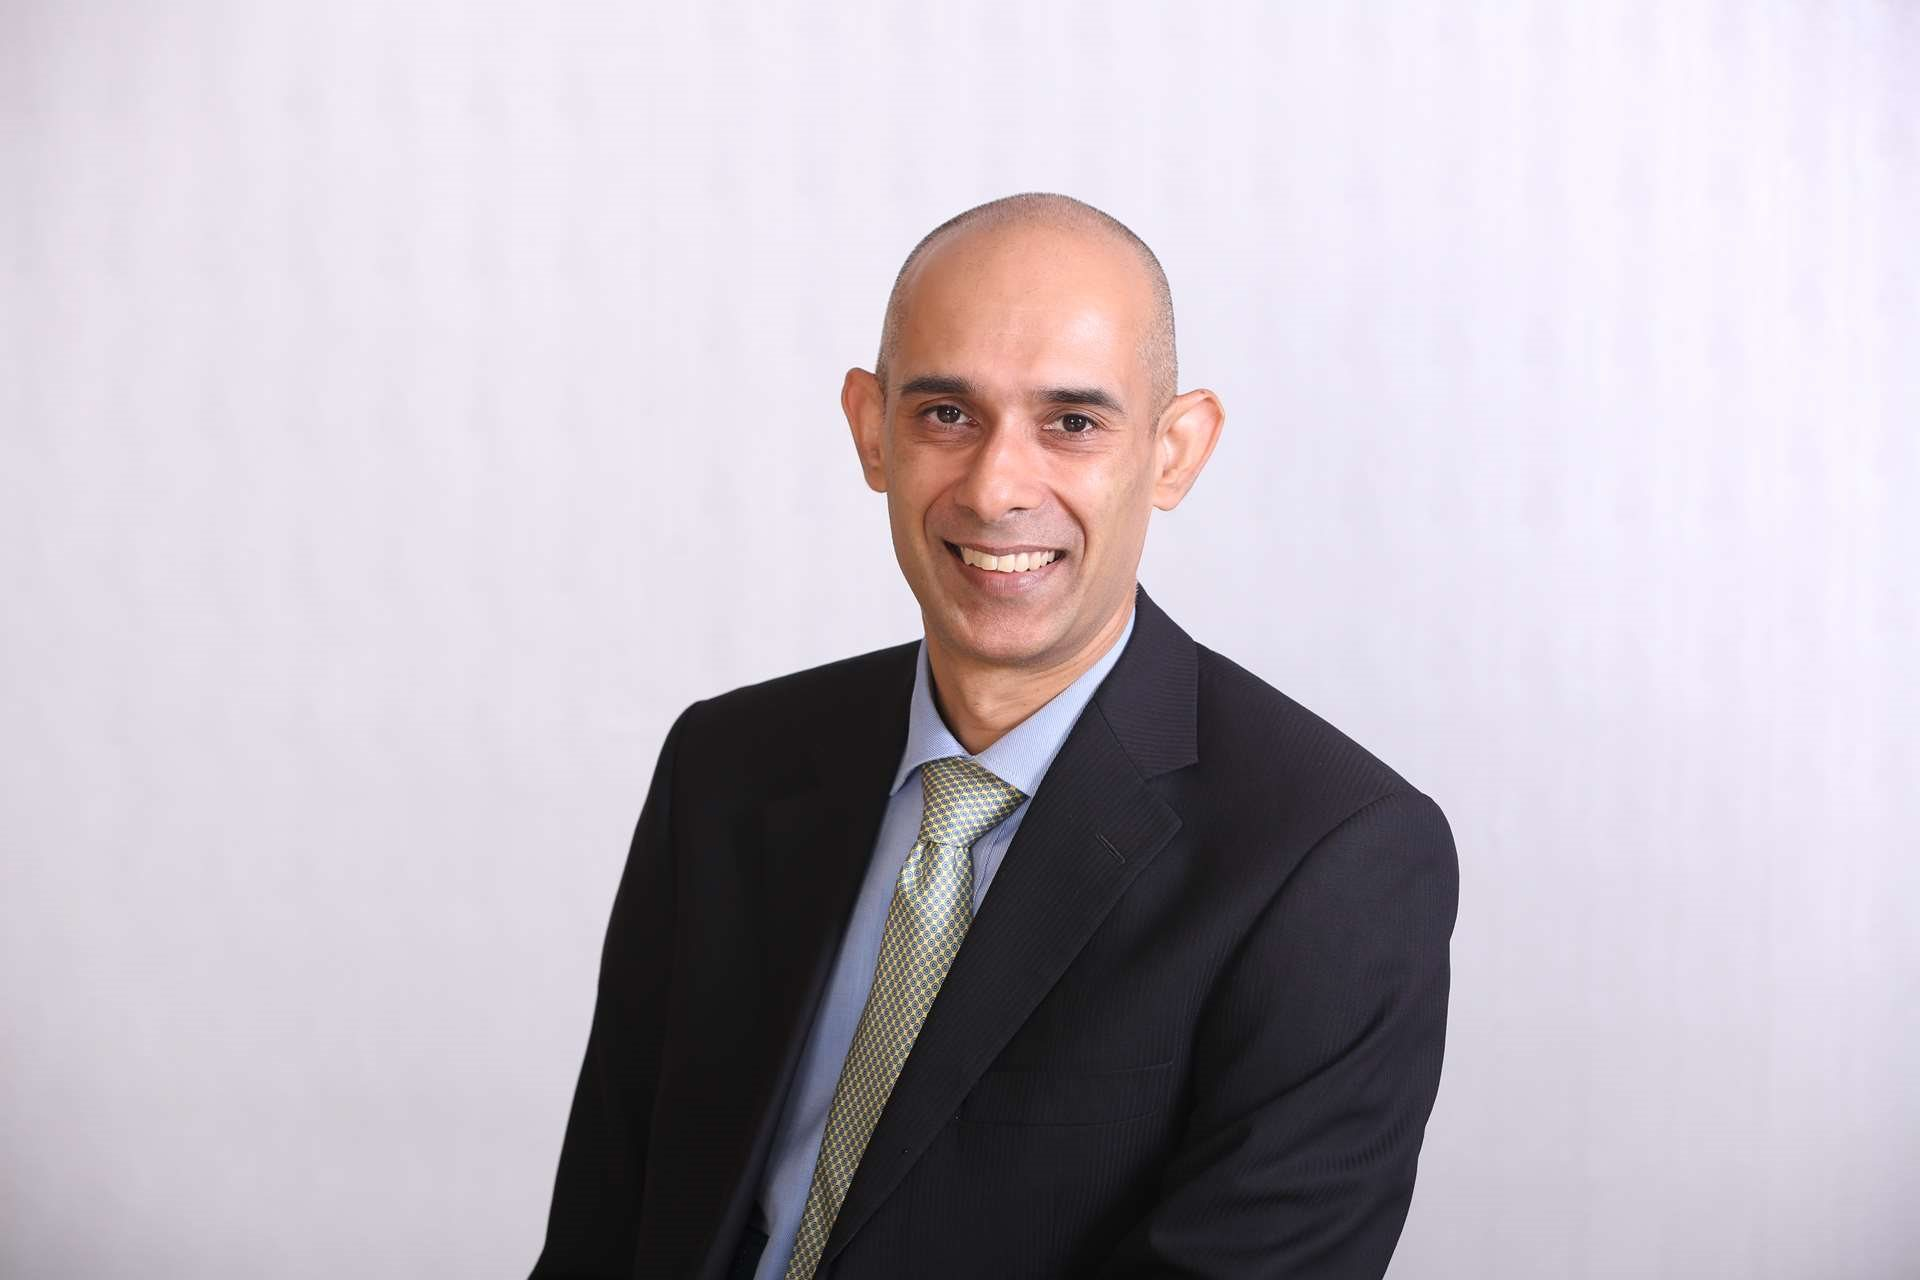 SANJAY SIDHU, Executive Director, Advisory